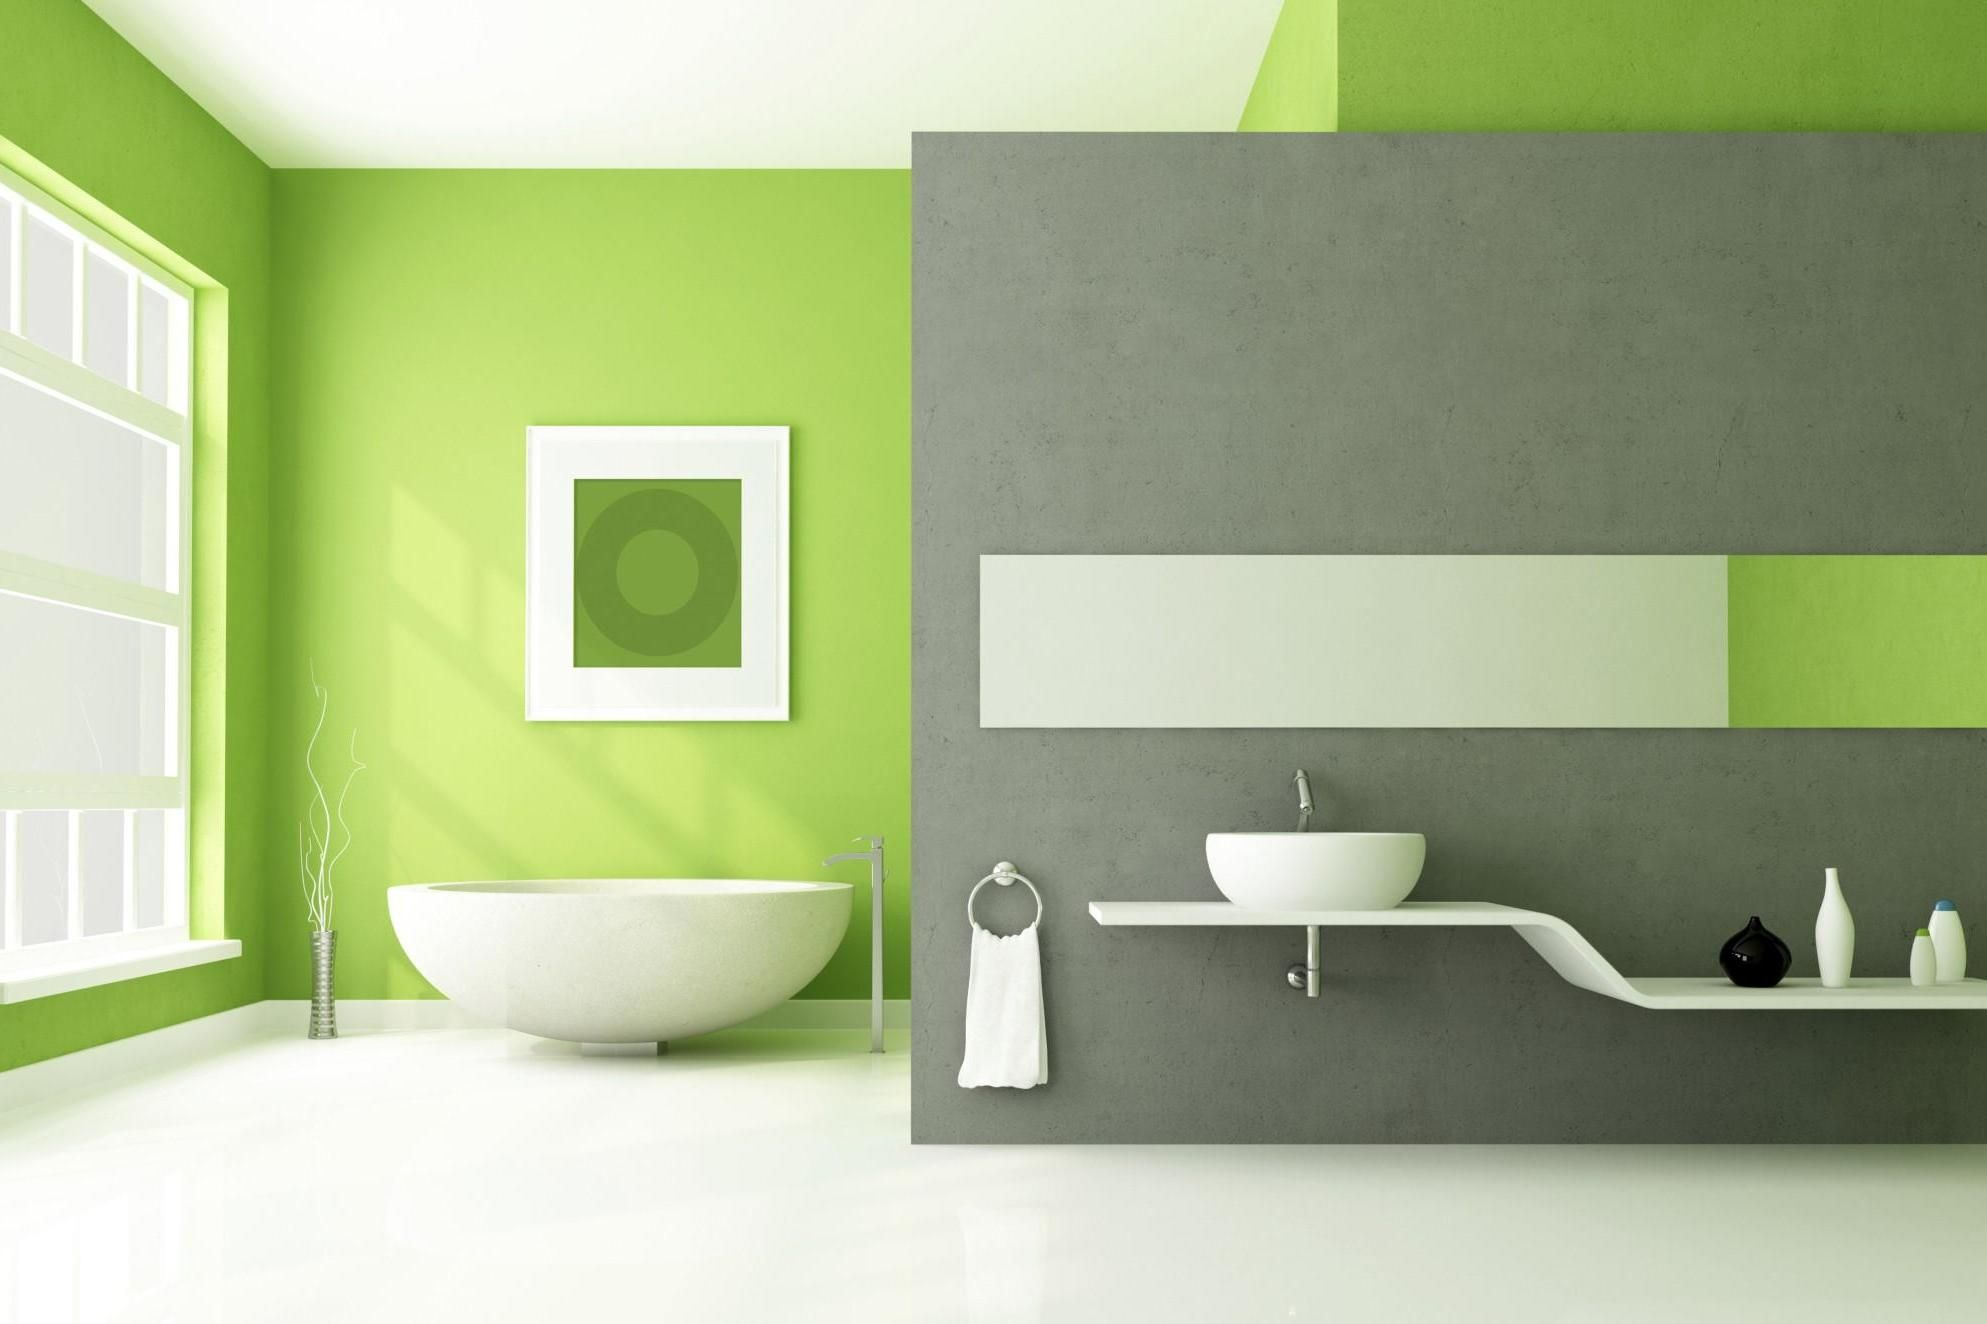 Green Bathroom Fresh Bathroom Green Paint Color Scheme Interior With Round Light Green Bathroom Ideas Green Bathroom Bathroom Green Bathroom Flooring